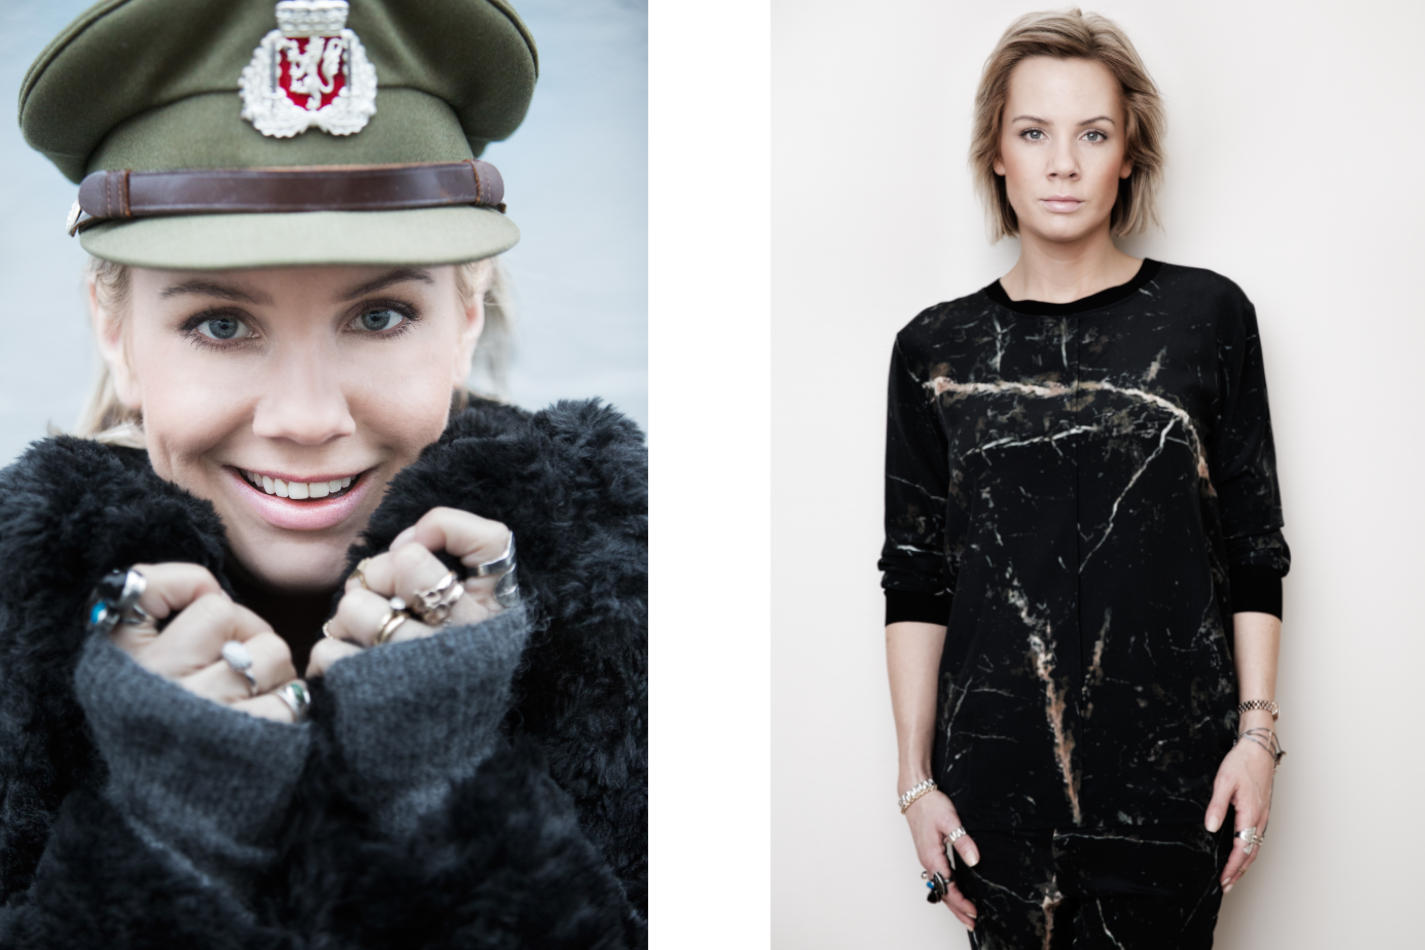 Ina Wroldsen: The Norwegian voice behind the world - Going solo - Scan Magazine